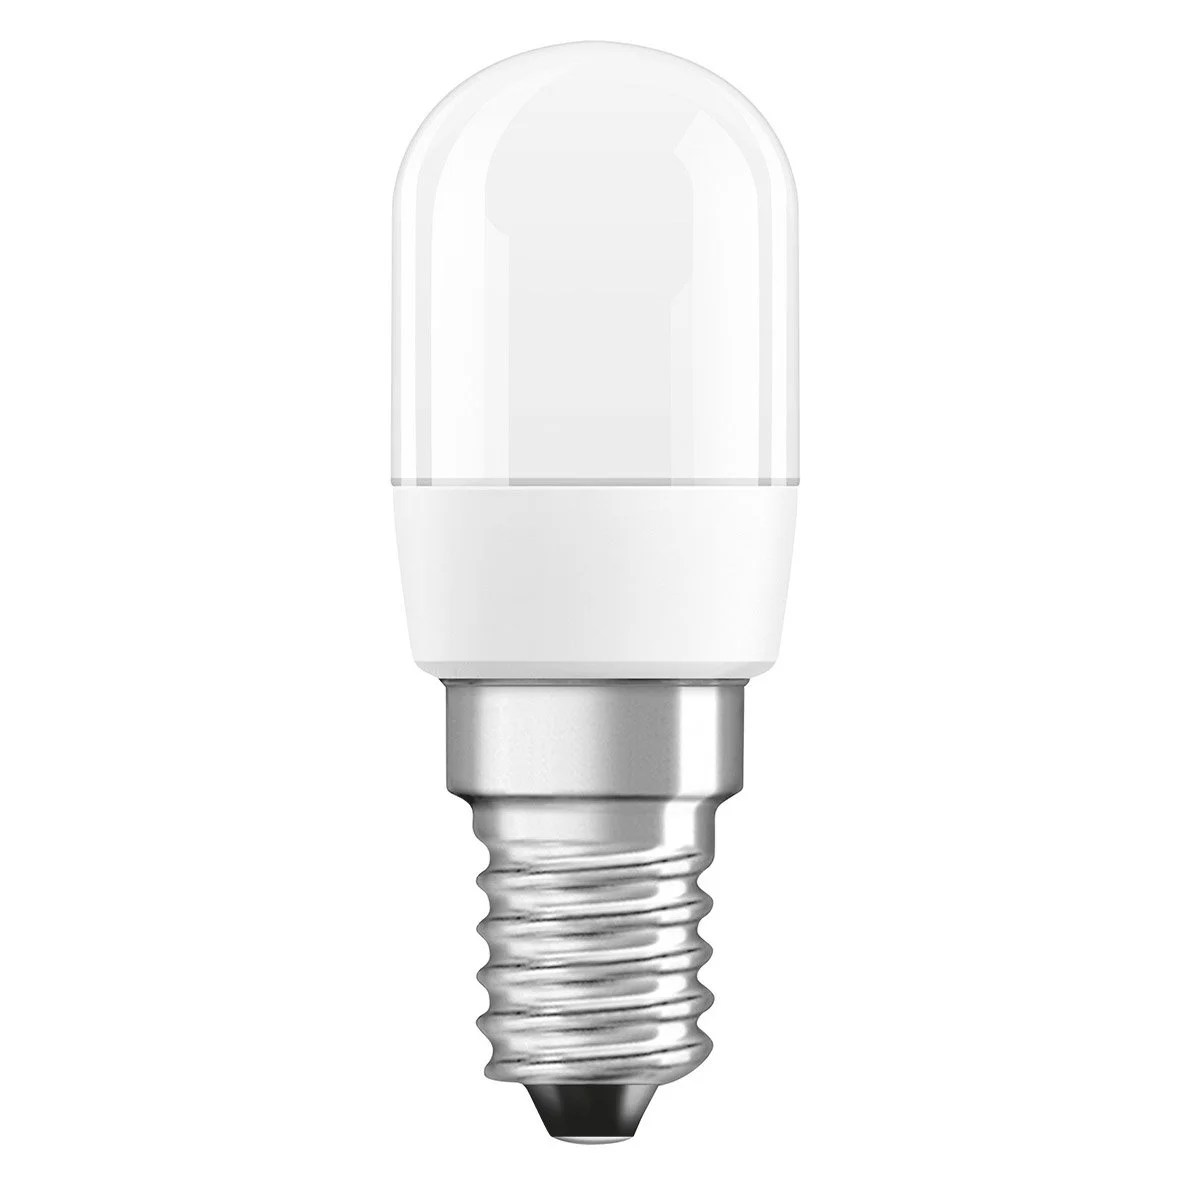 Ampoule Filament Led Leroy Merlin Led Tube Bulb 200lm 2 2w Equiv 20w E27 2700k Osram Led Bulb